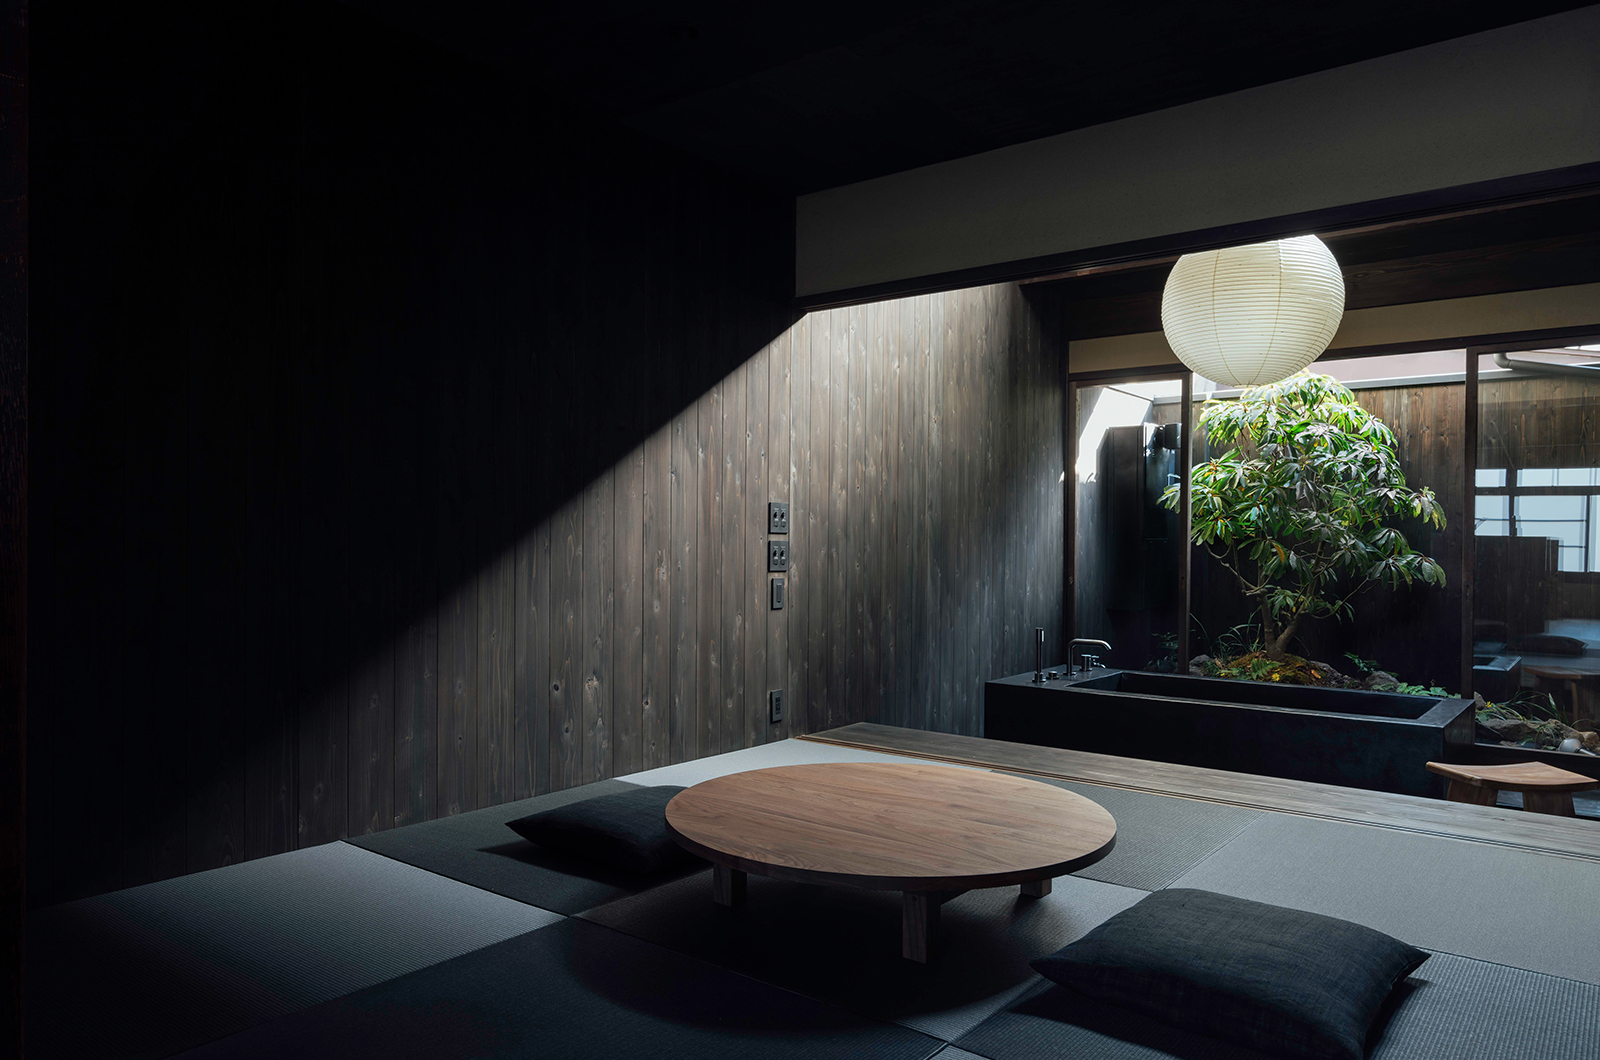 Maana Kamo living area with bathtub and garden